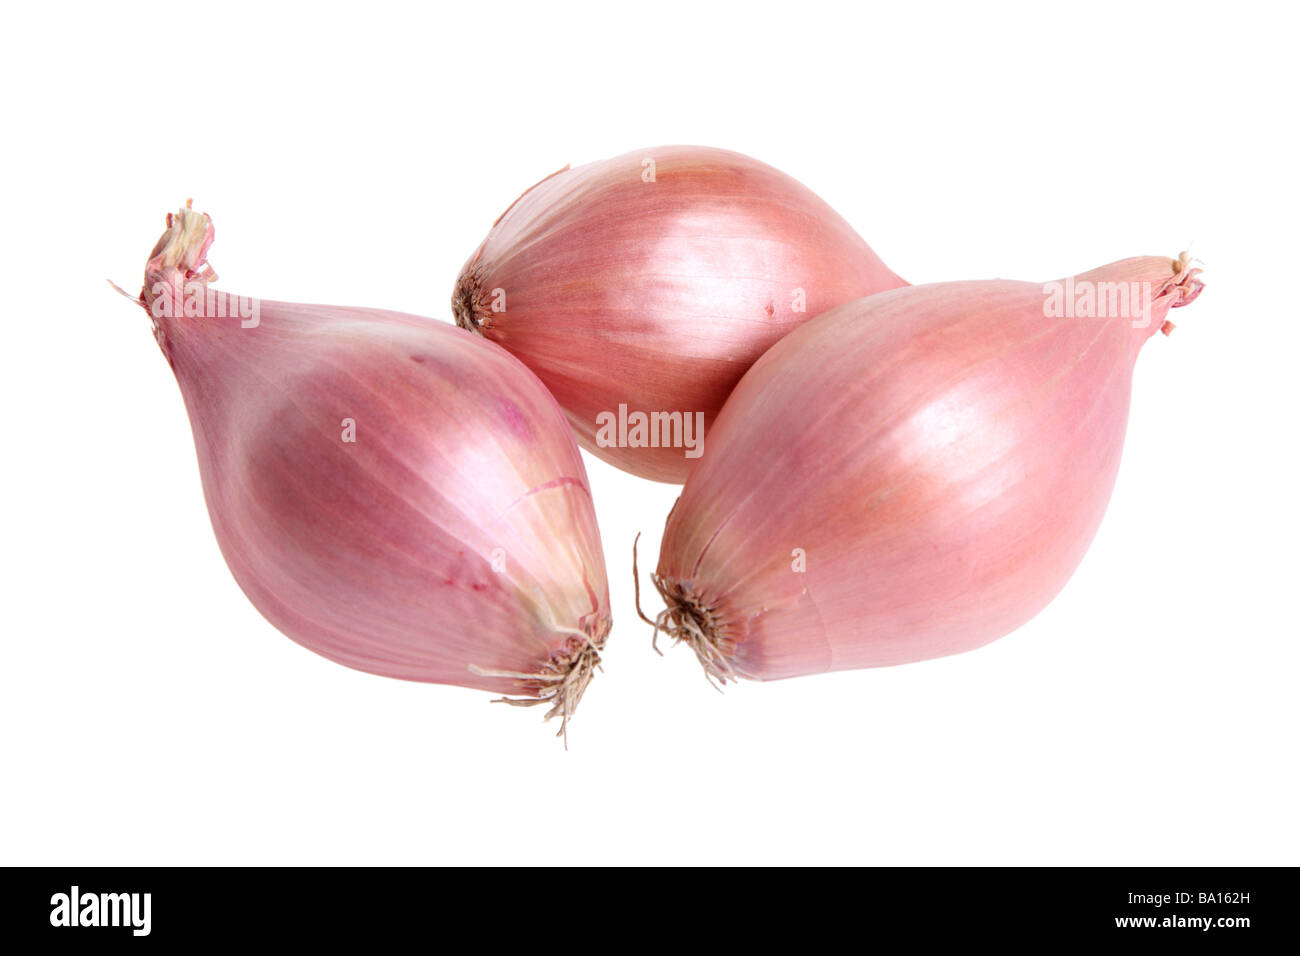 Shallots cutout on white background Stock Photo